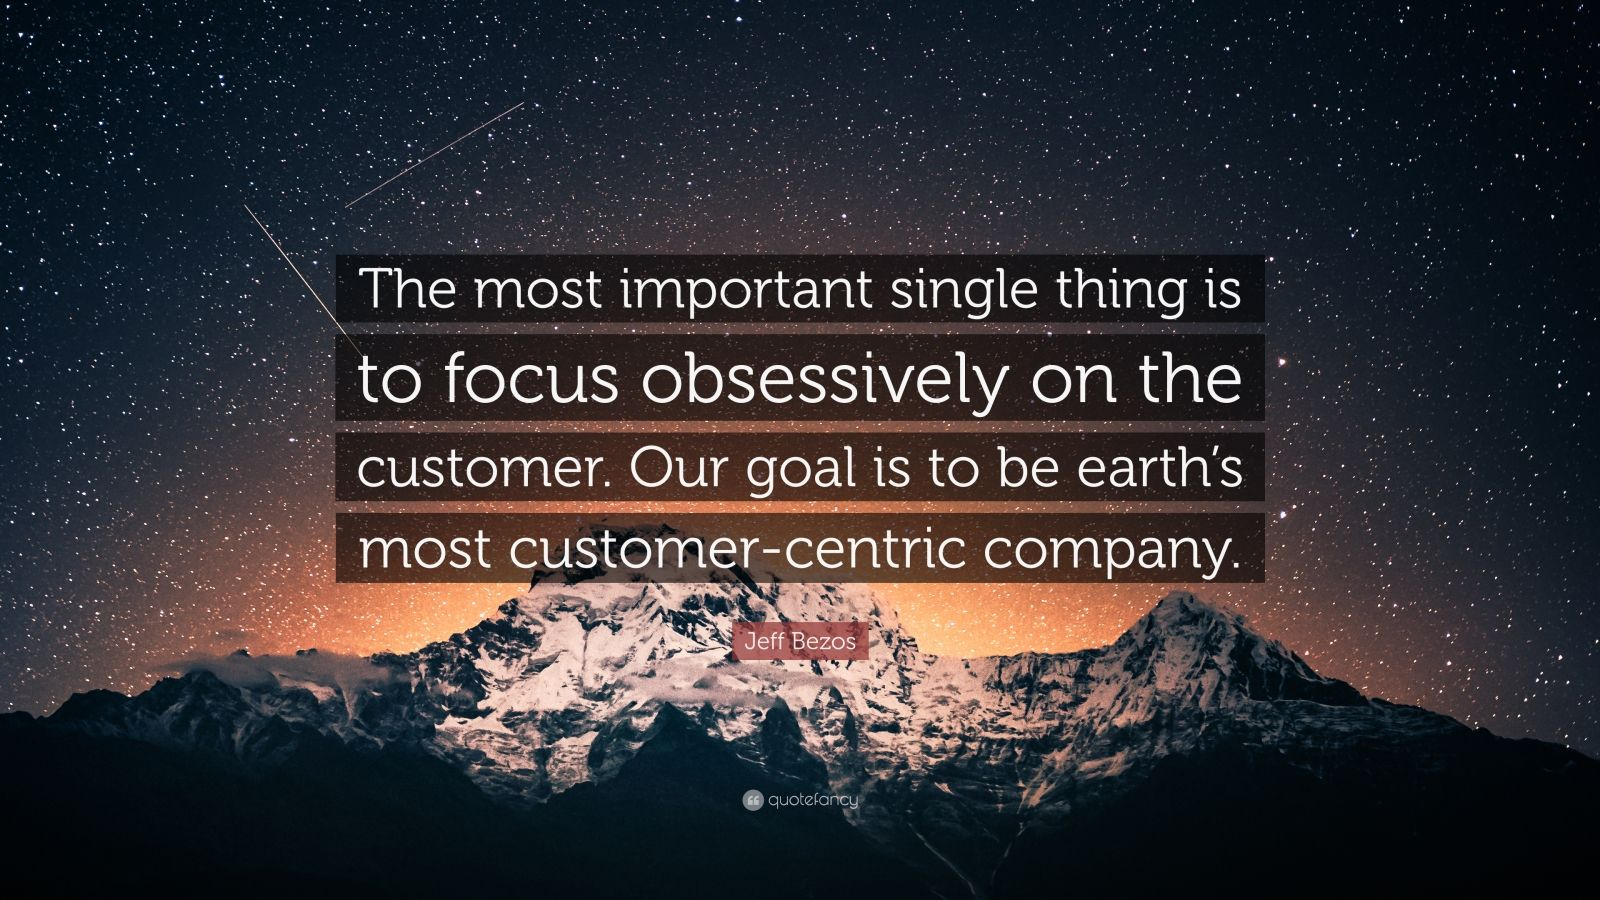 """Jeff Bezos Quote: """"The most important single thing is to focus obsessively on the customer. Our goal is to be earth's most customer-centric company."""""""